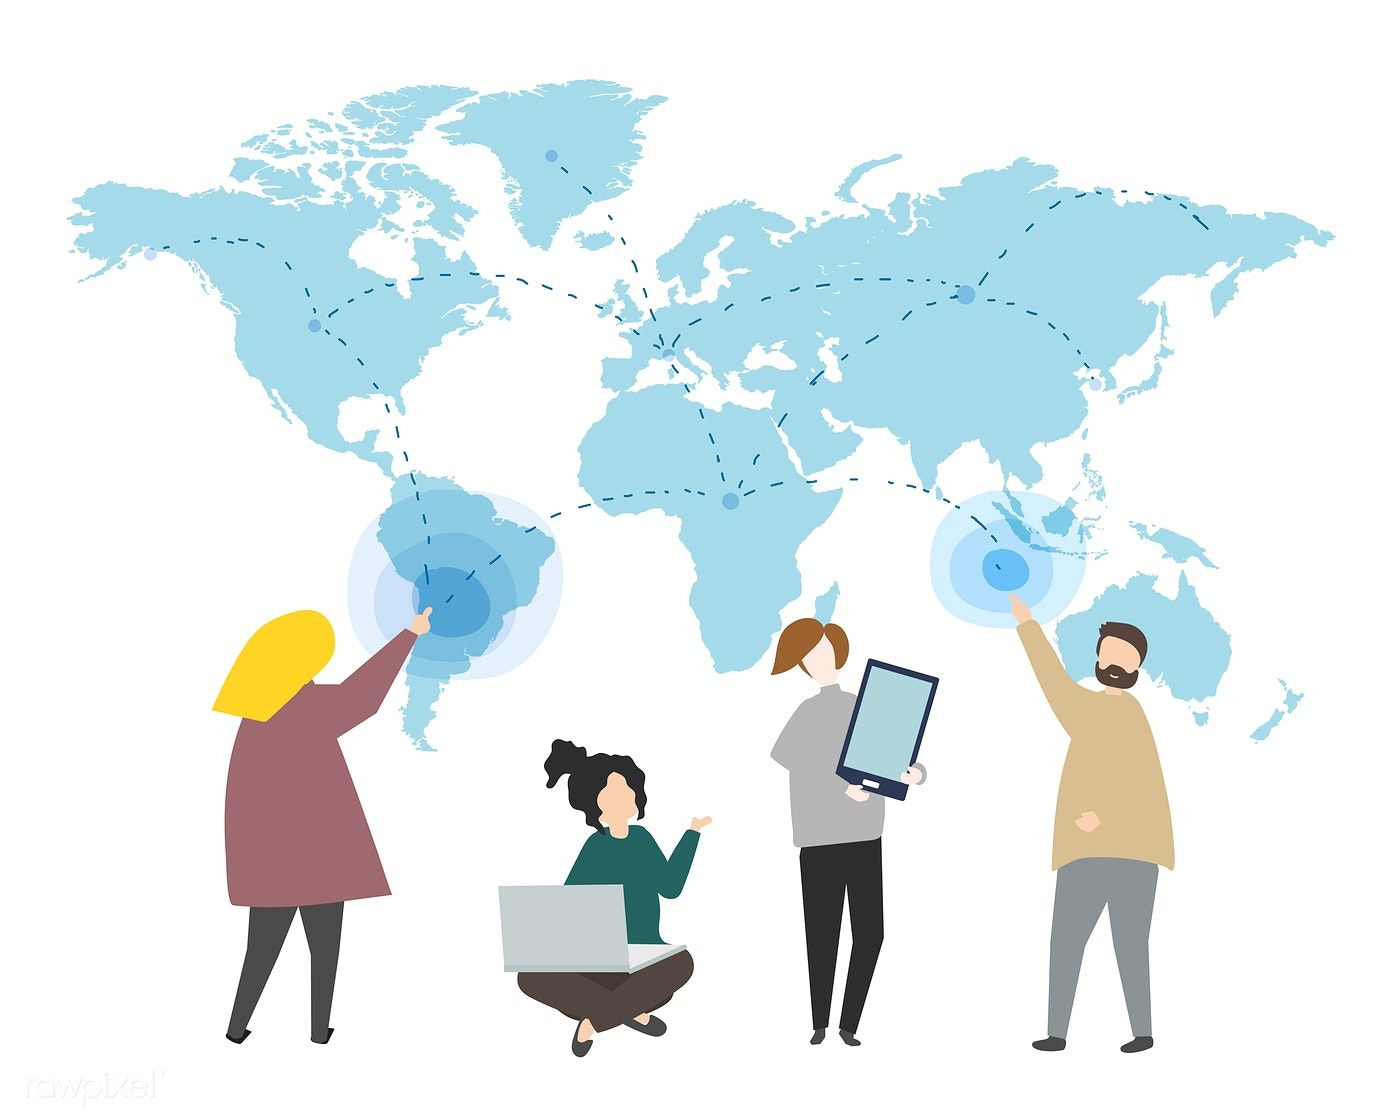 Online data and global connection illustration   free image by rawpixel.com  / busbus   Illustration, Vector free, Character illustration